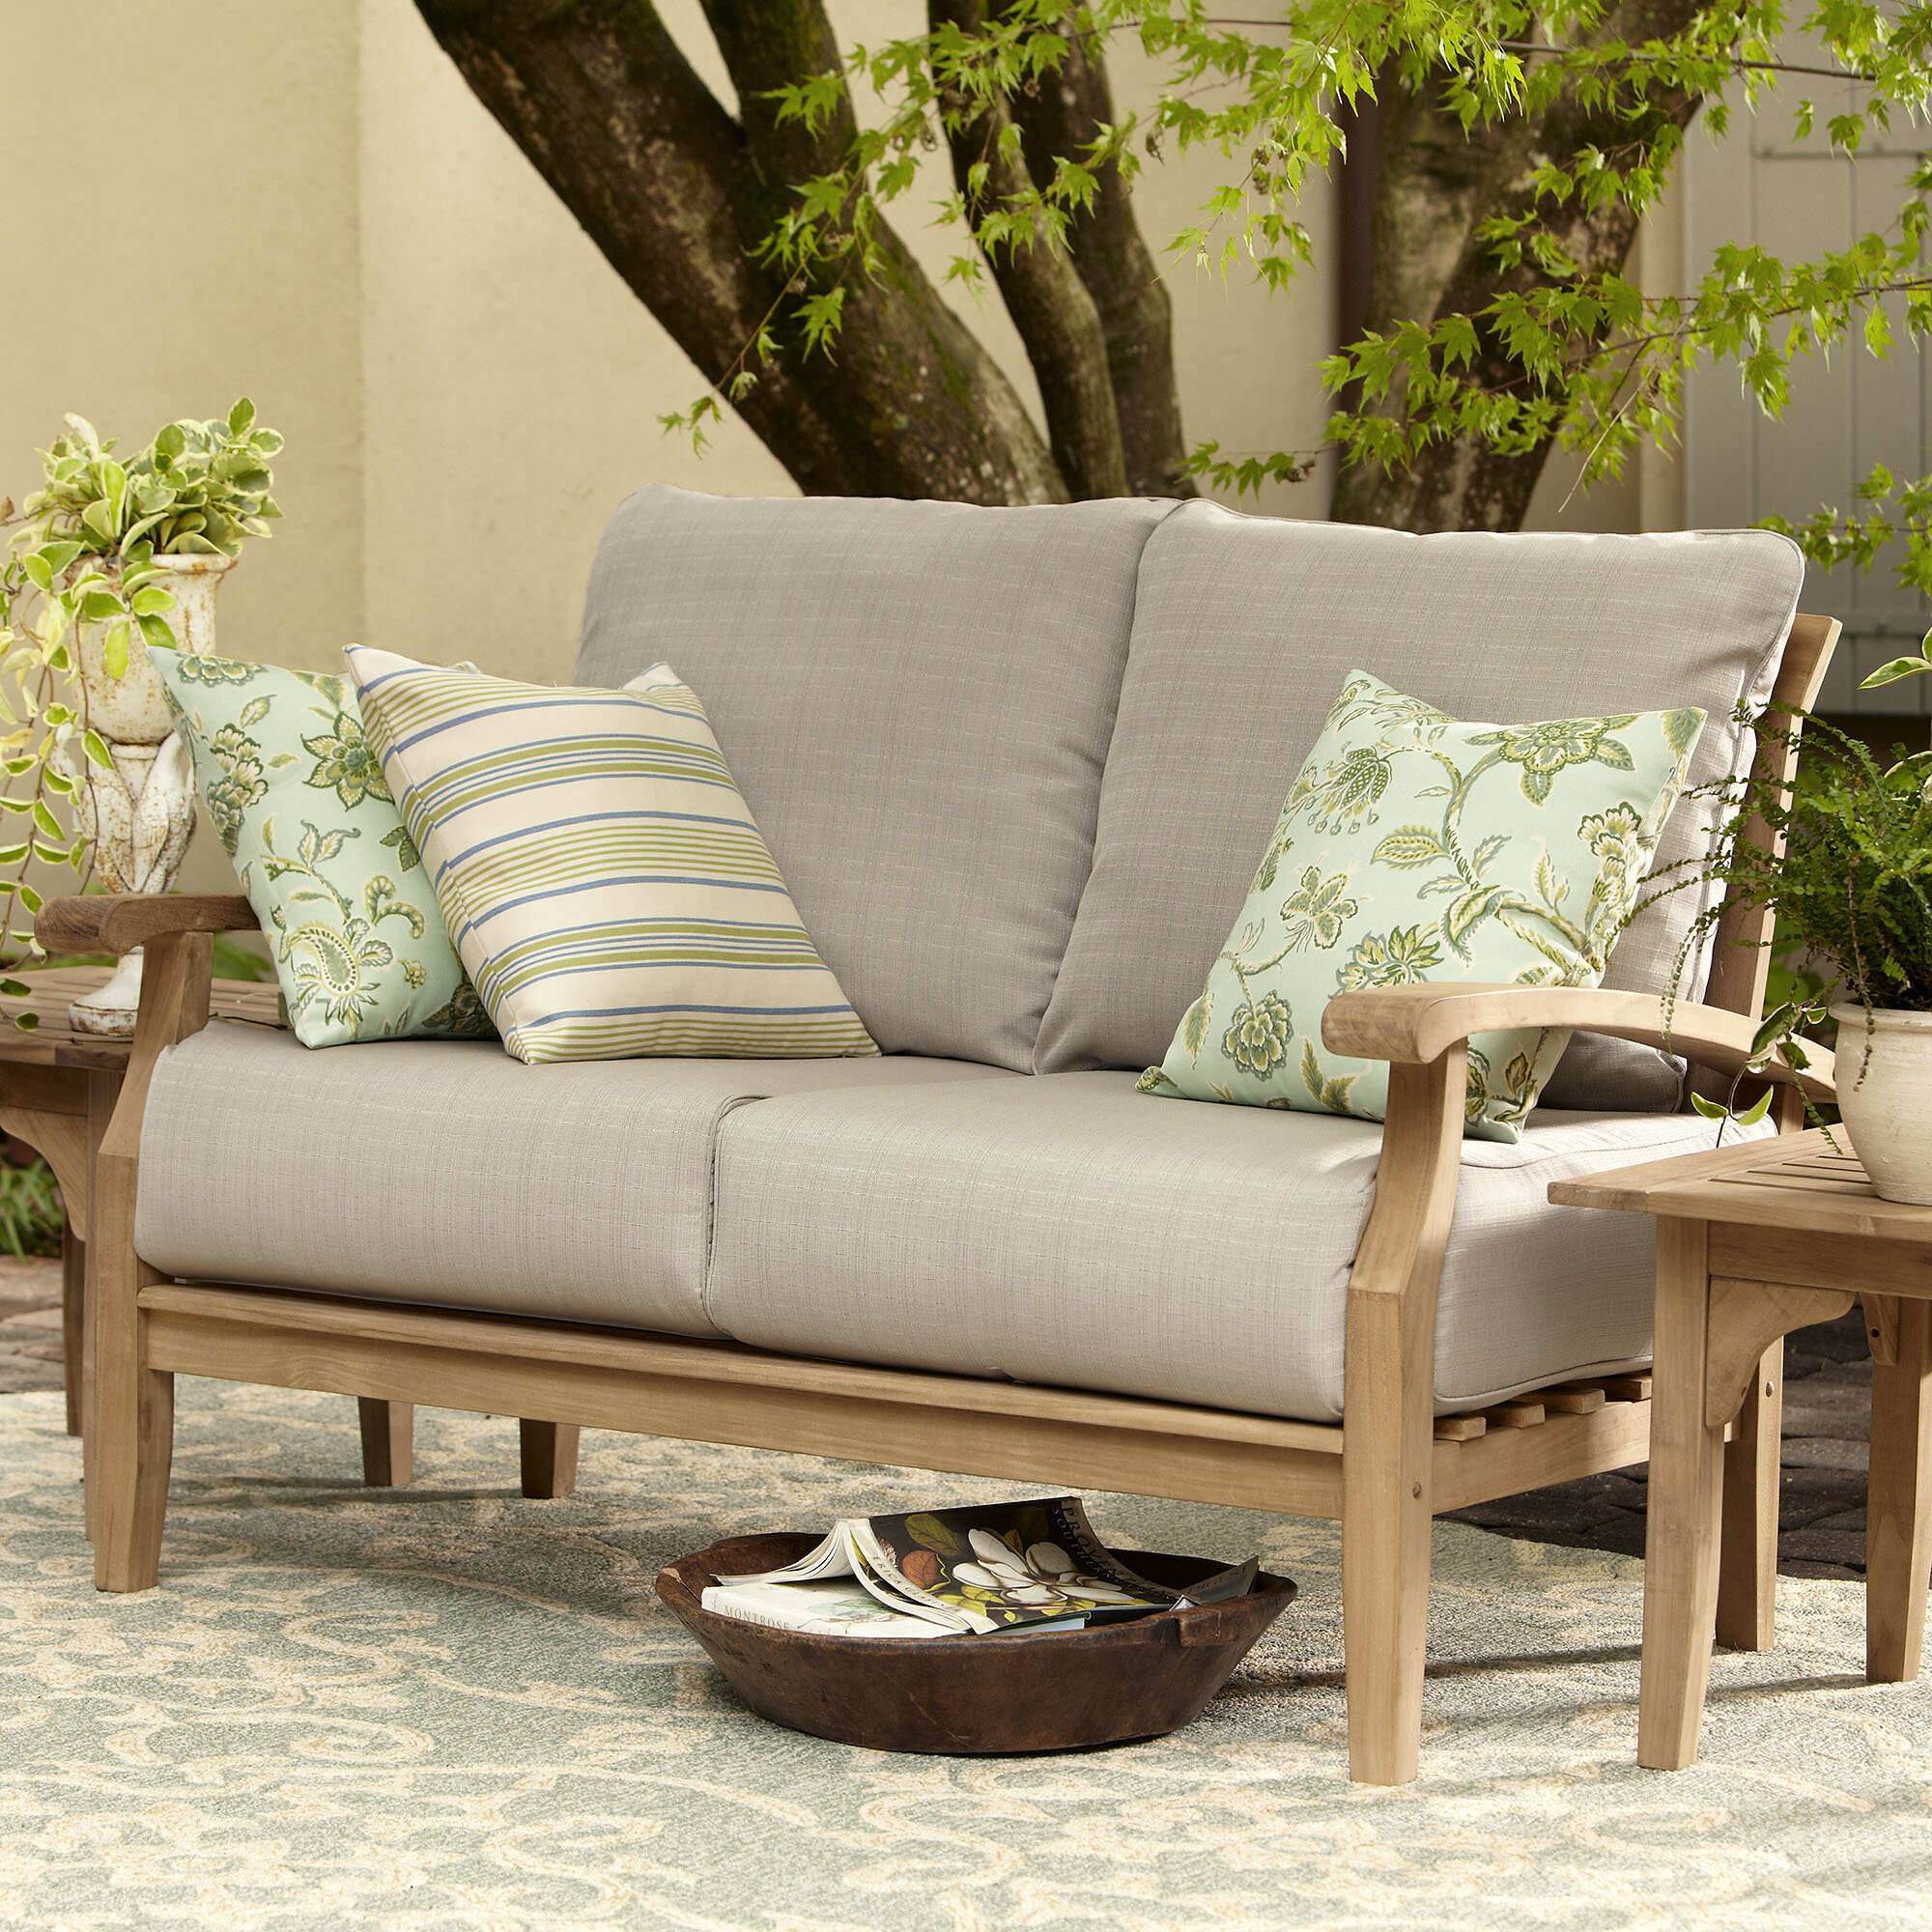 with by puerta christopher home product free today wicker knight garden overstock cushion shipping outdoor loveseat